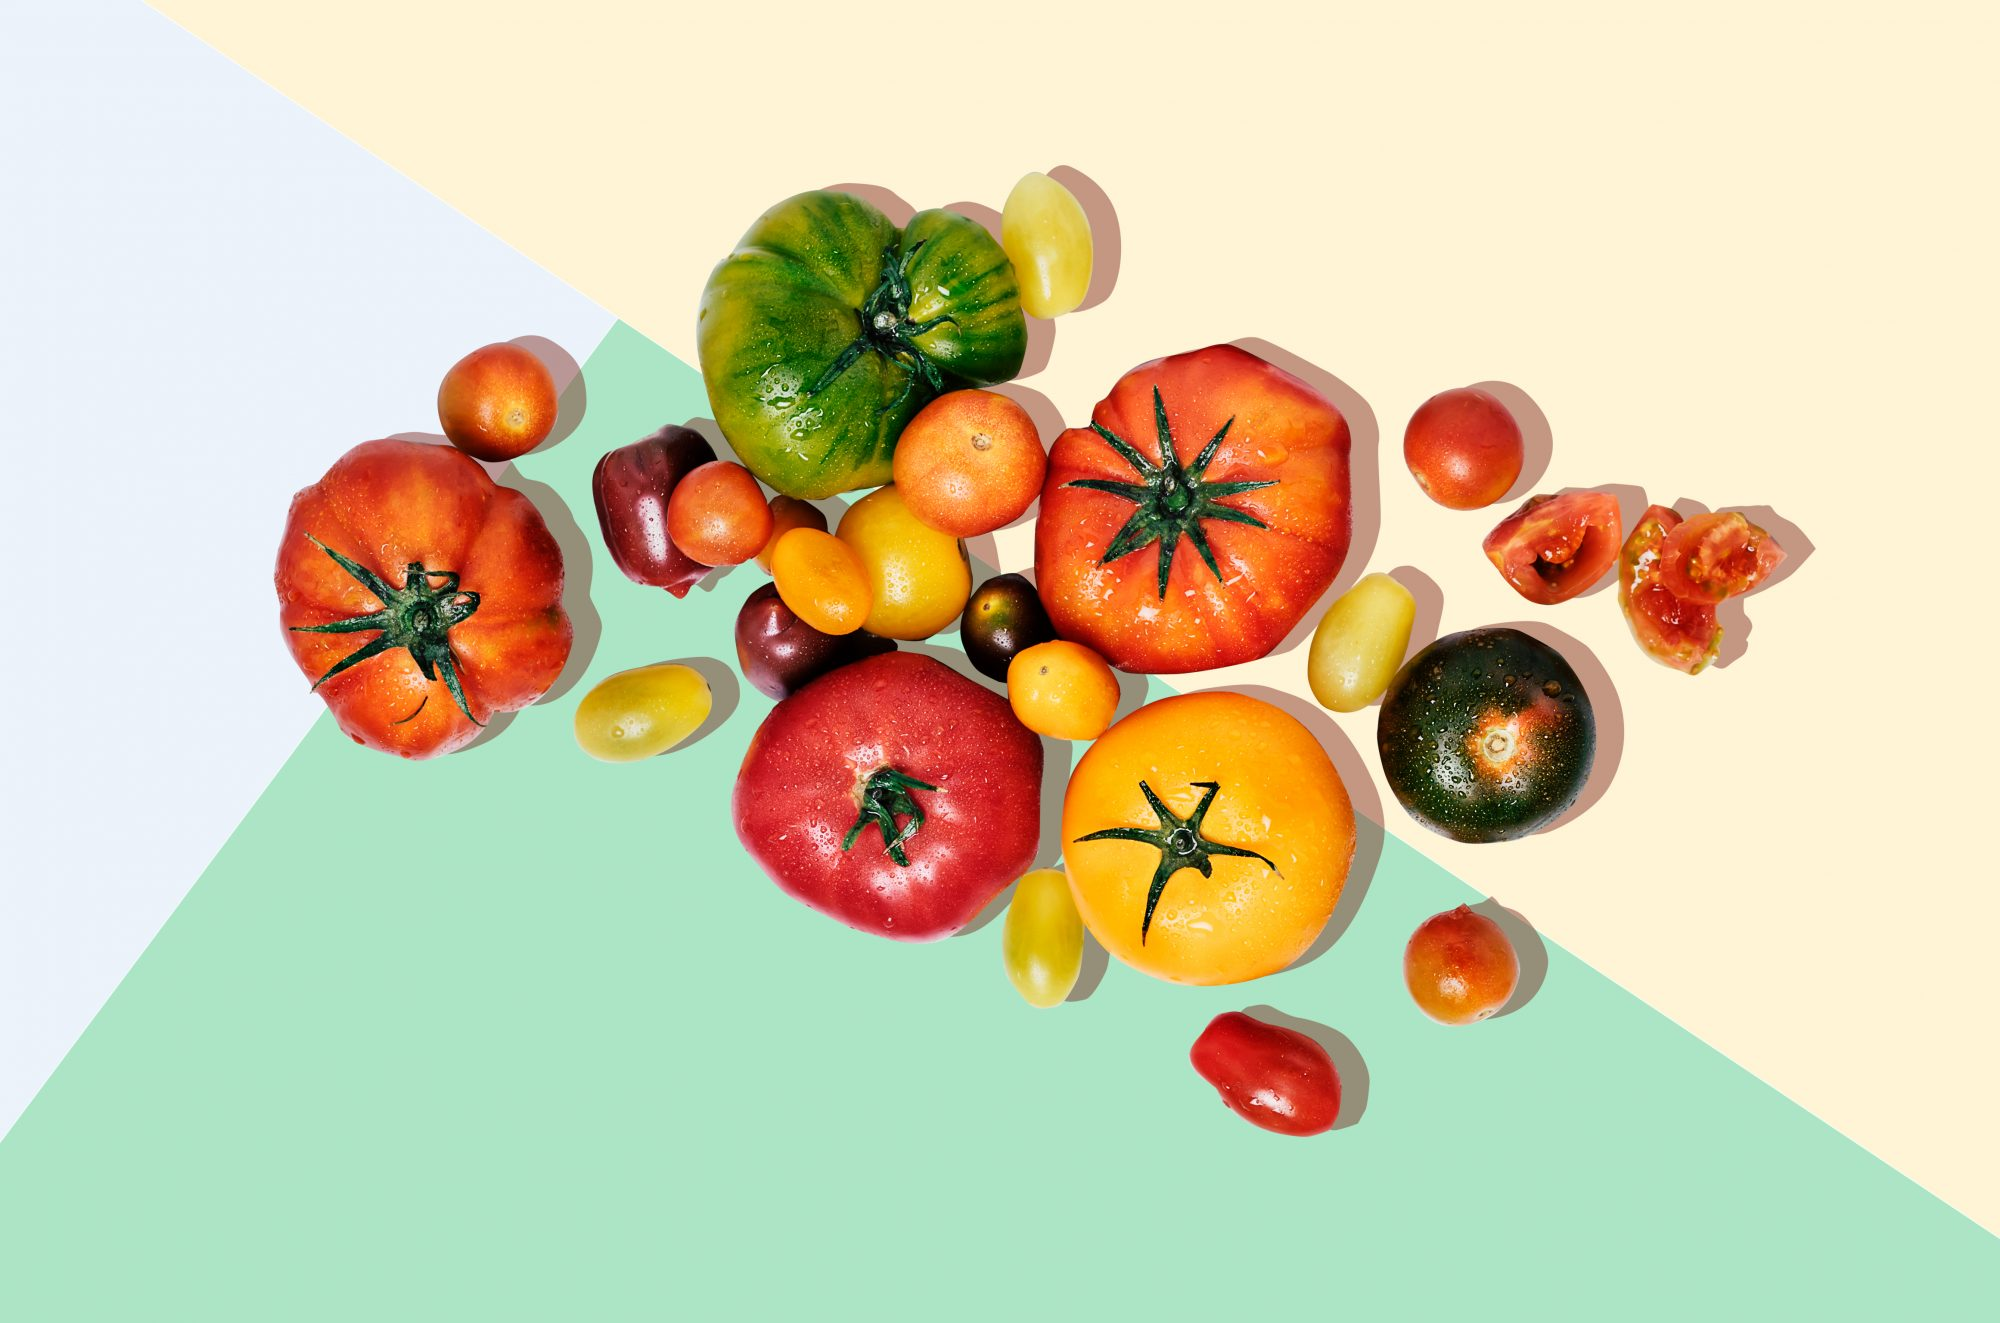 Types of Tomatoes: 15 Fresh Ways to Use Tomatoes